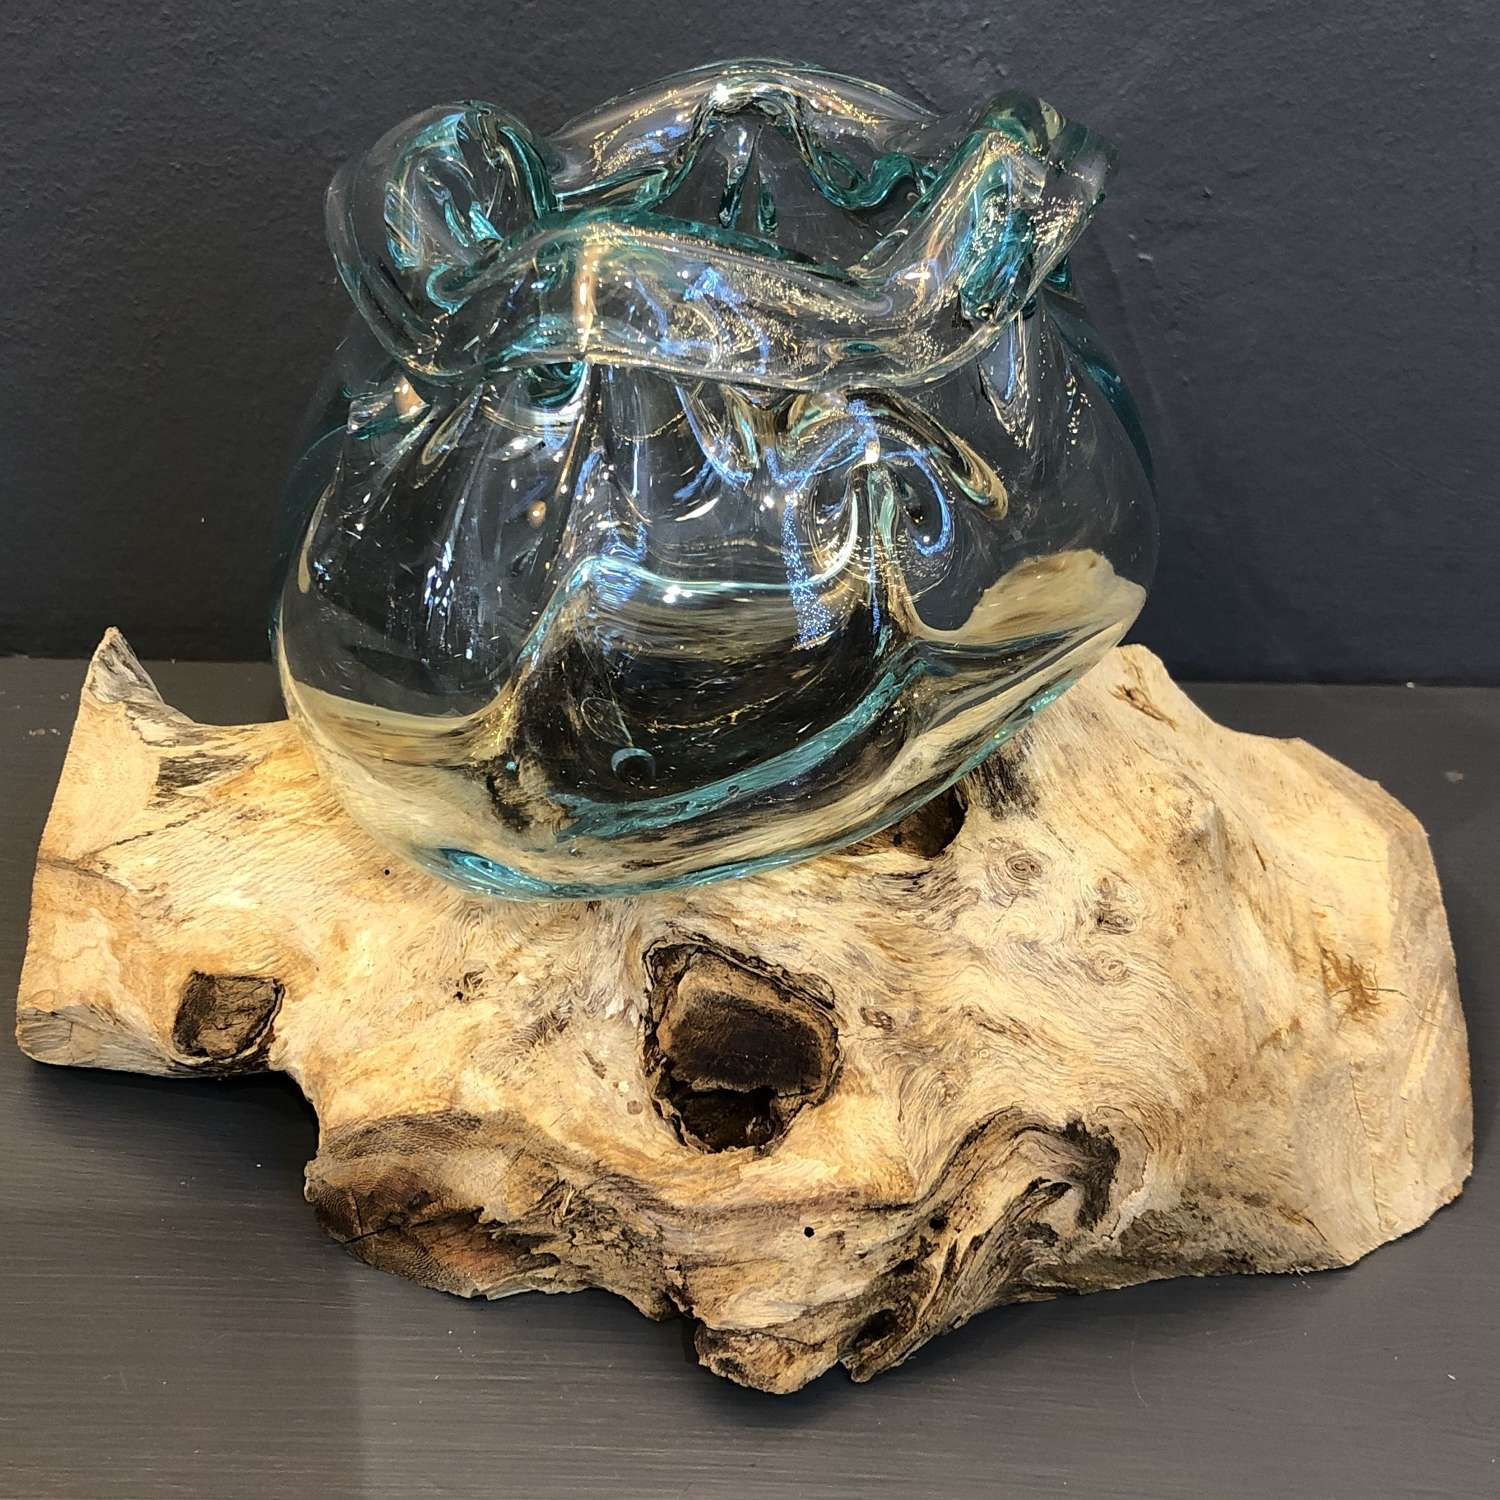 Bali glass bowl and wood sculpture